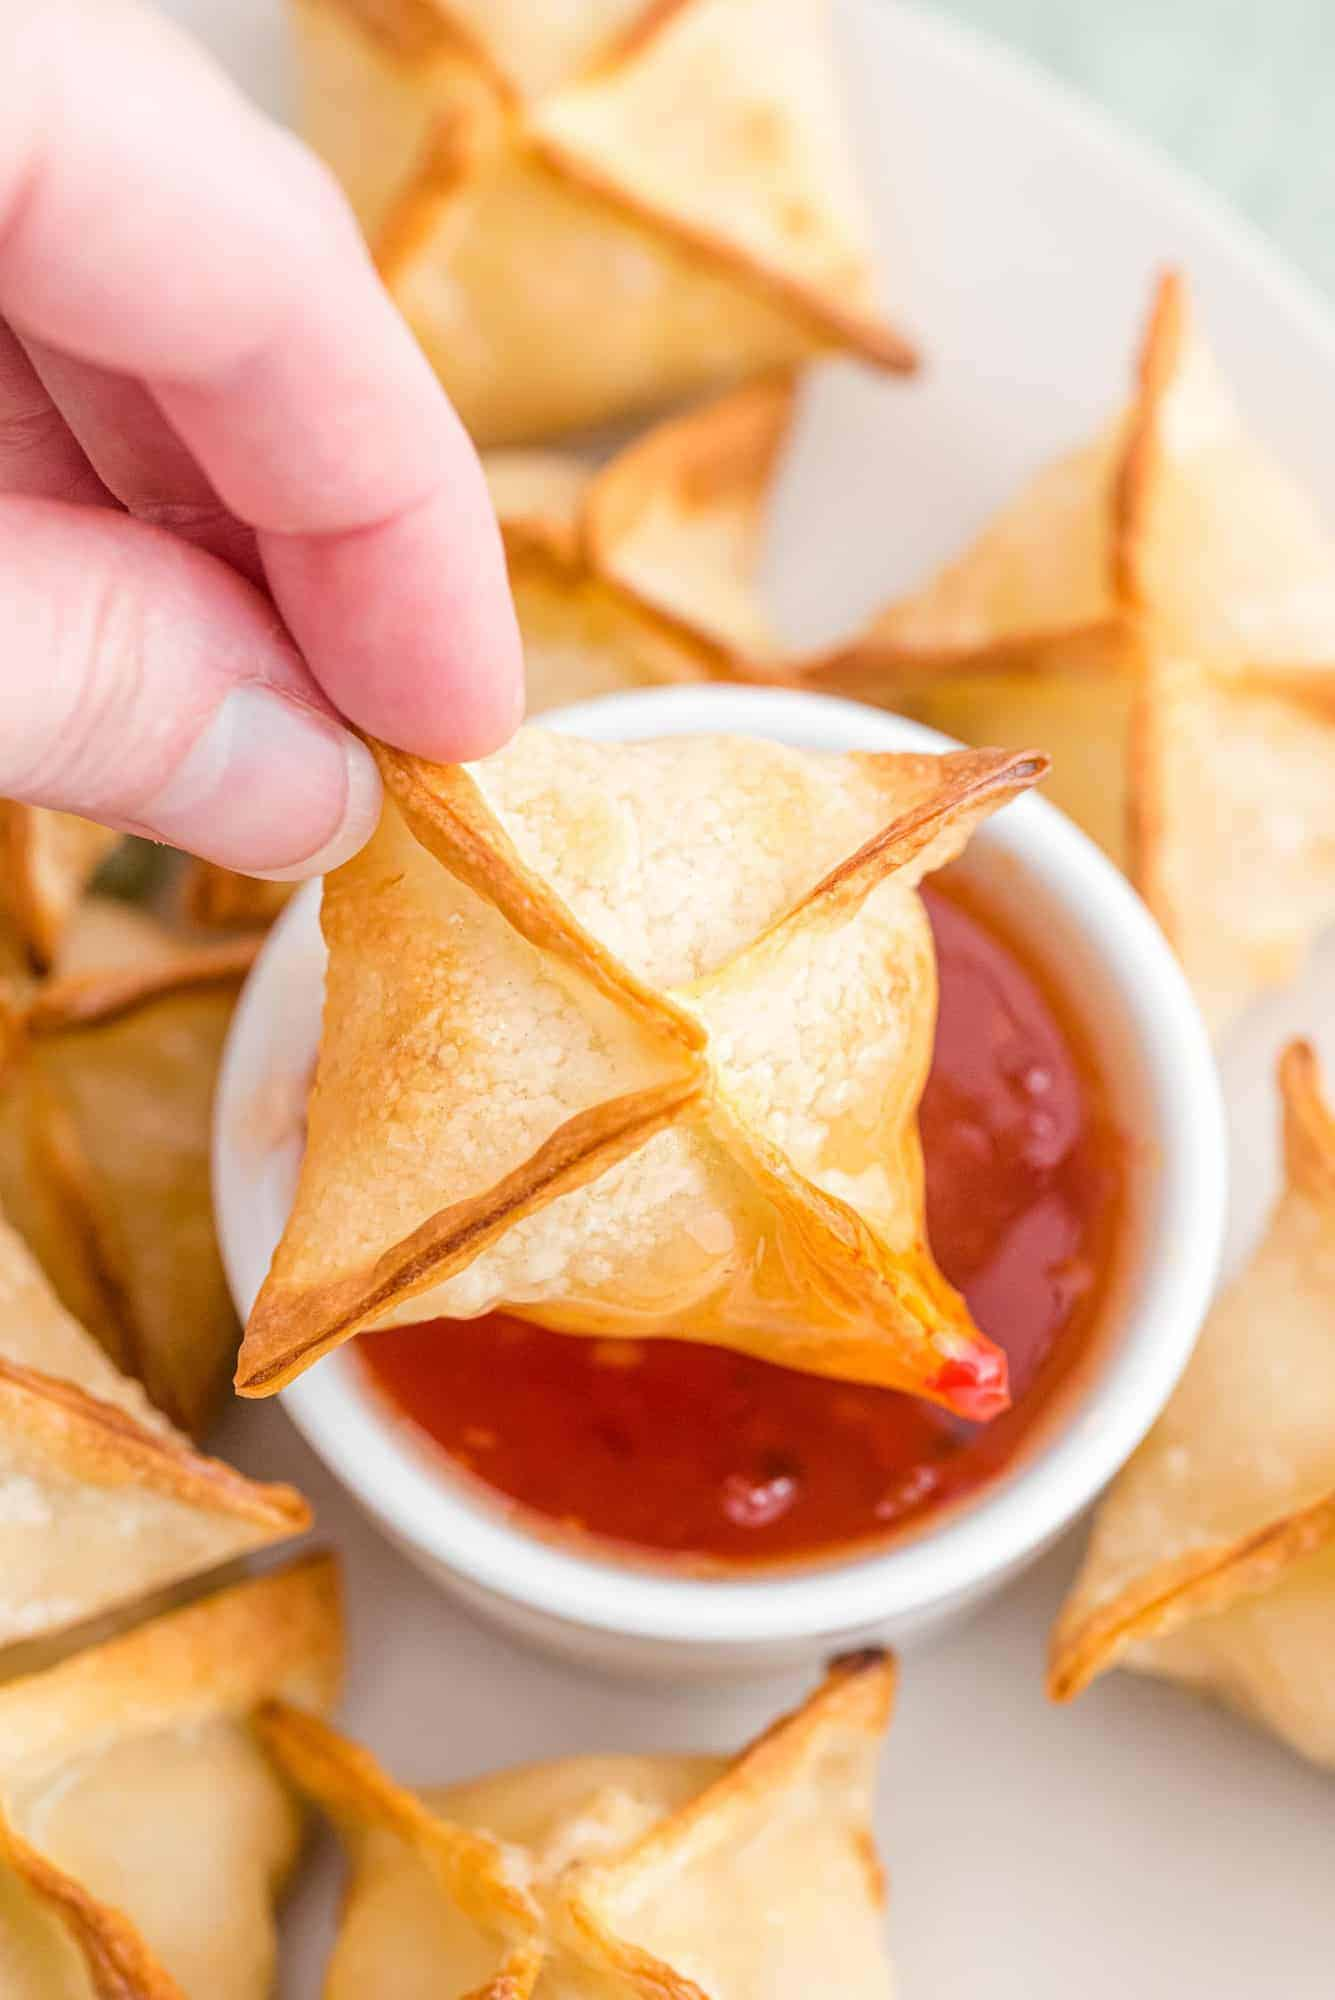 Crab wonton being dipped into a small bowl of sweet chili sauce.